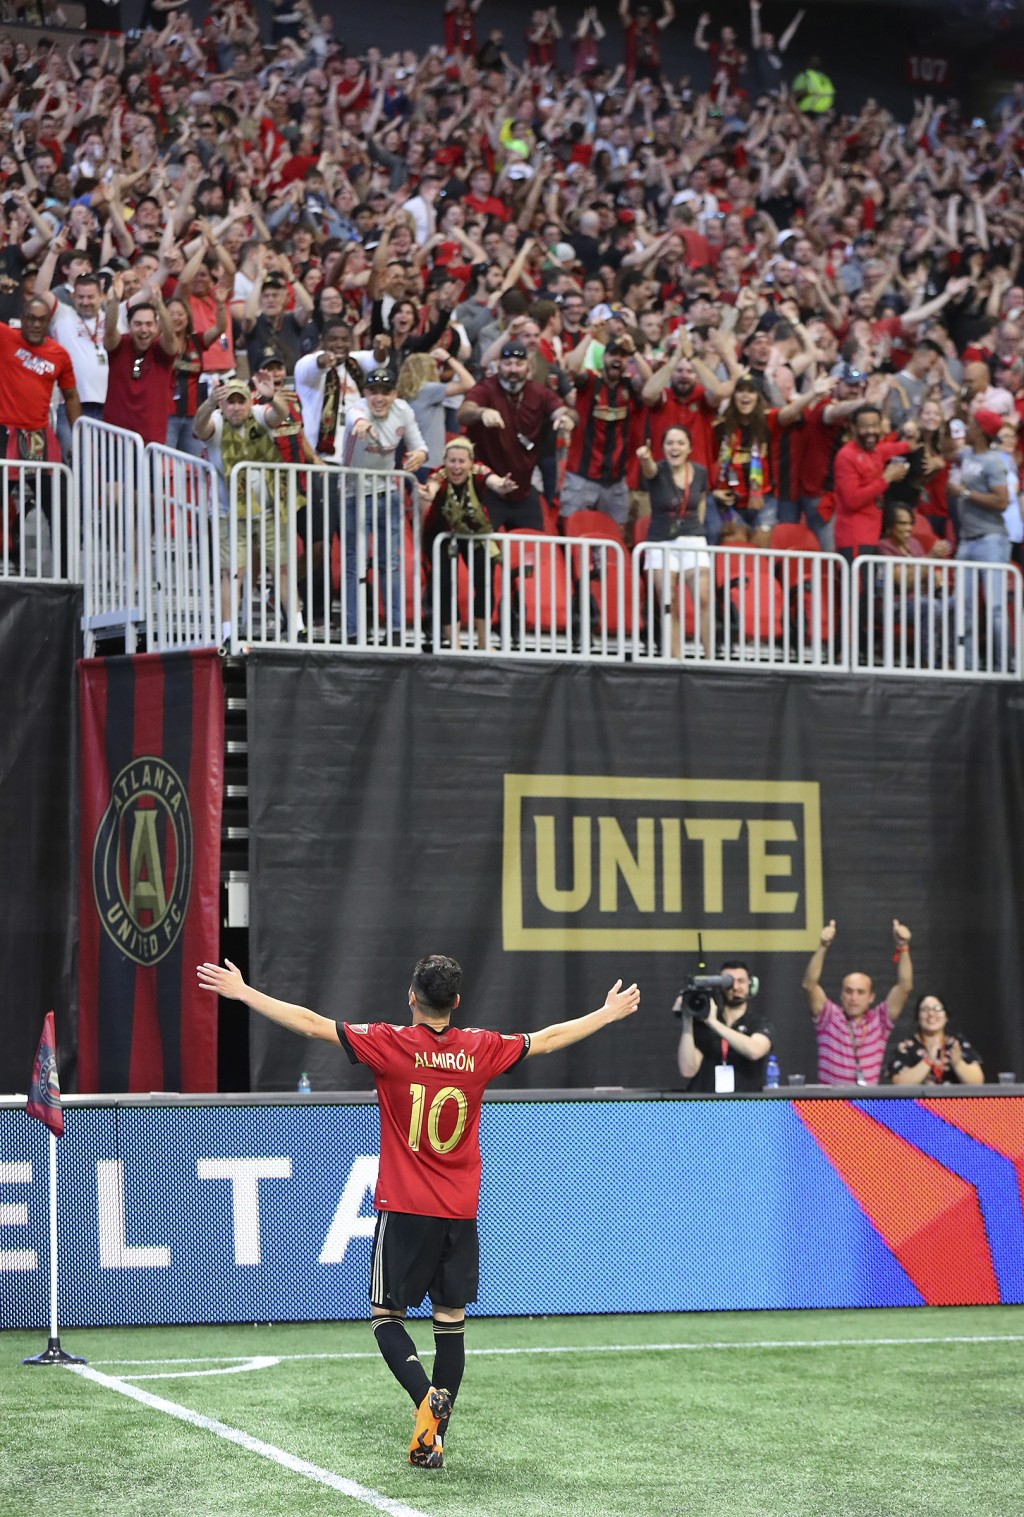 Atlanta United midfielder Miguel Almiron plays to the fans after scoring a goal over Montreal Impact during the second half of an MLS soccer game on S...